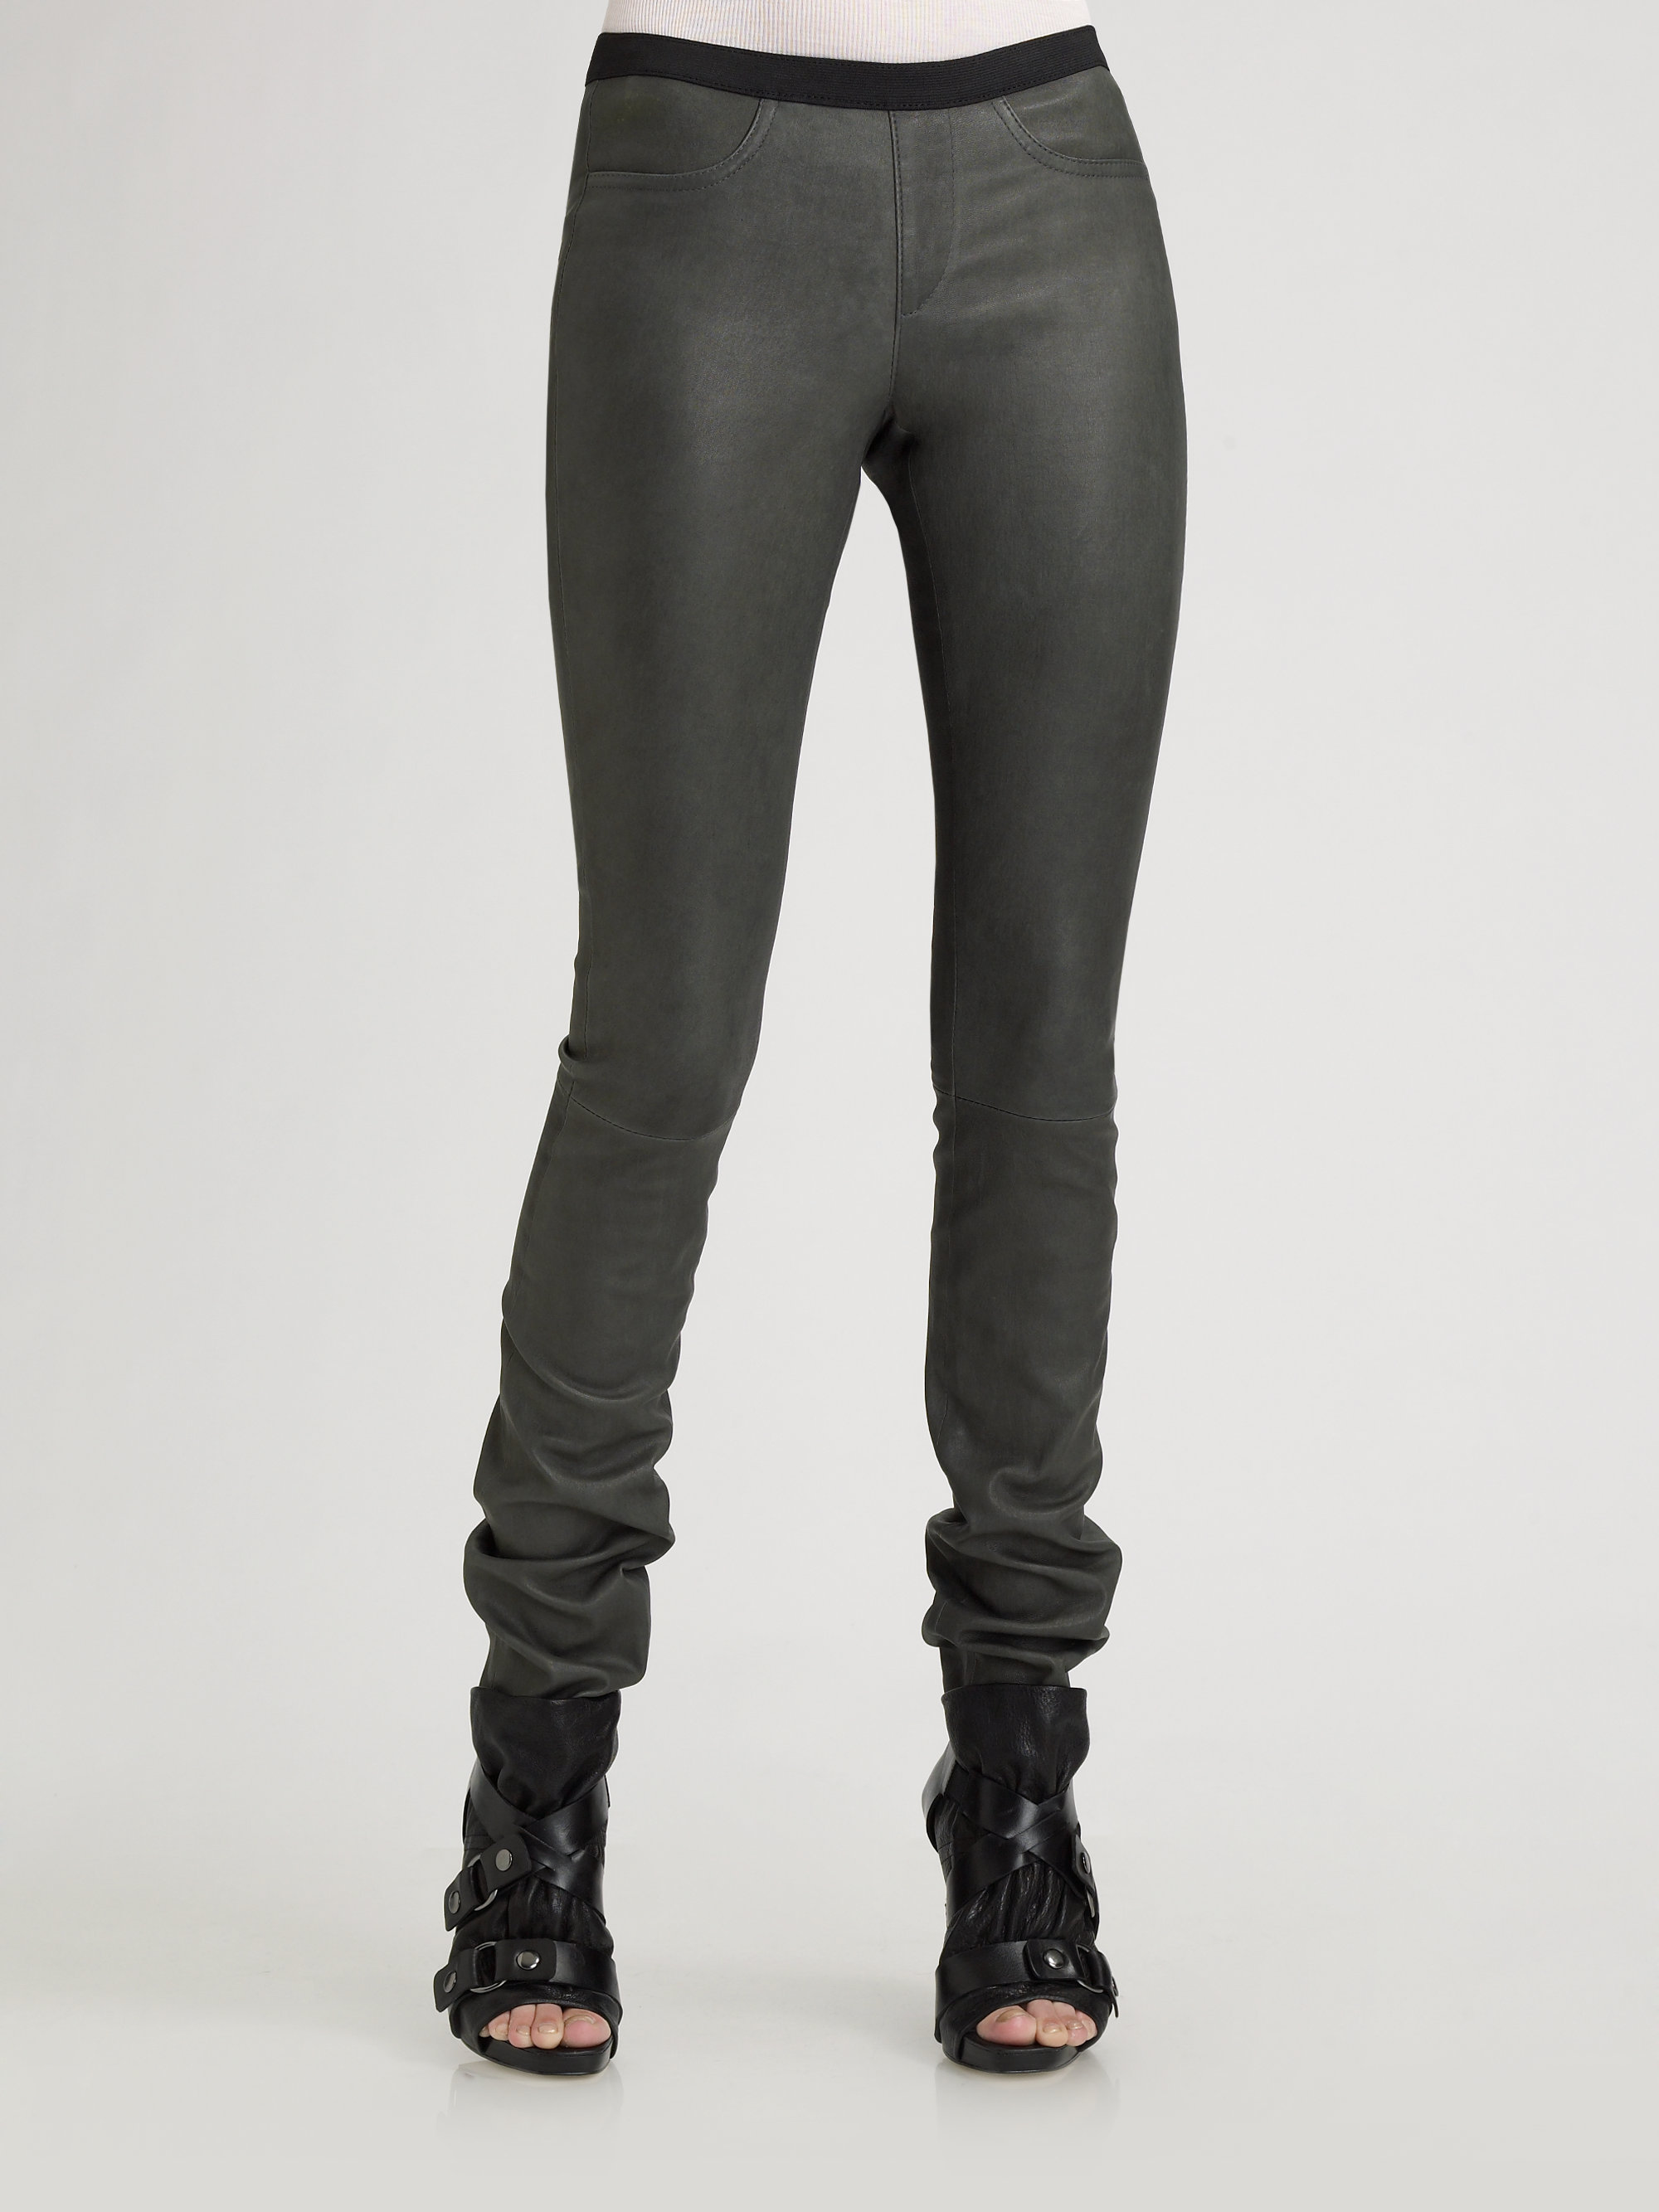 Helmut lang Stretch Leather Leggings in Gray | Lyst